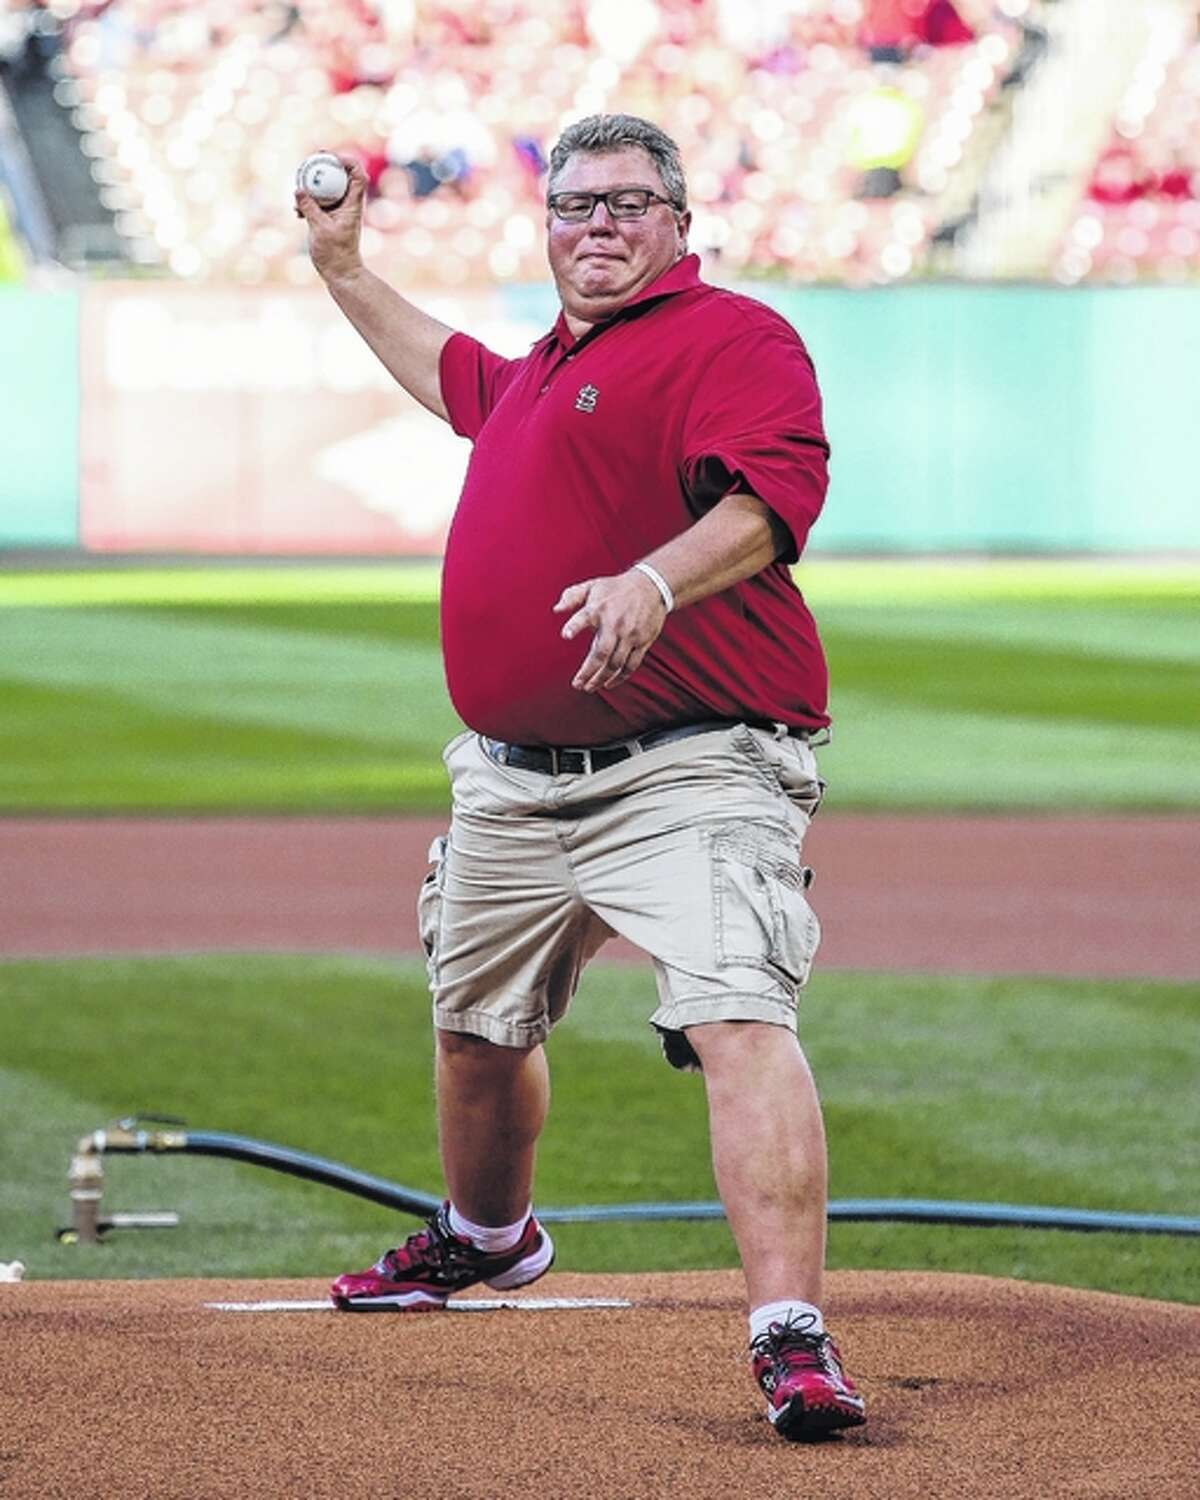 Jacksonville Mayor Andy Ezard throws out the first pitch before Friday night's game between the Pittsburgh Pirates and the St. Louis Cardinals at Busch Stadium in St. Louis. (Photo by Tim Spyers)